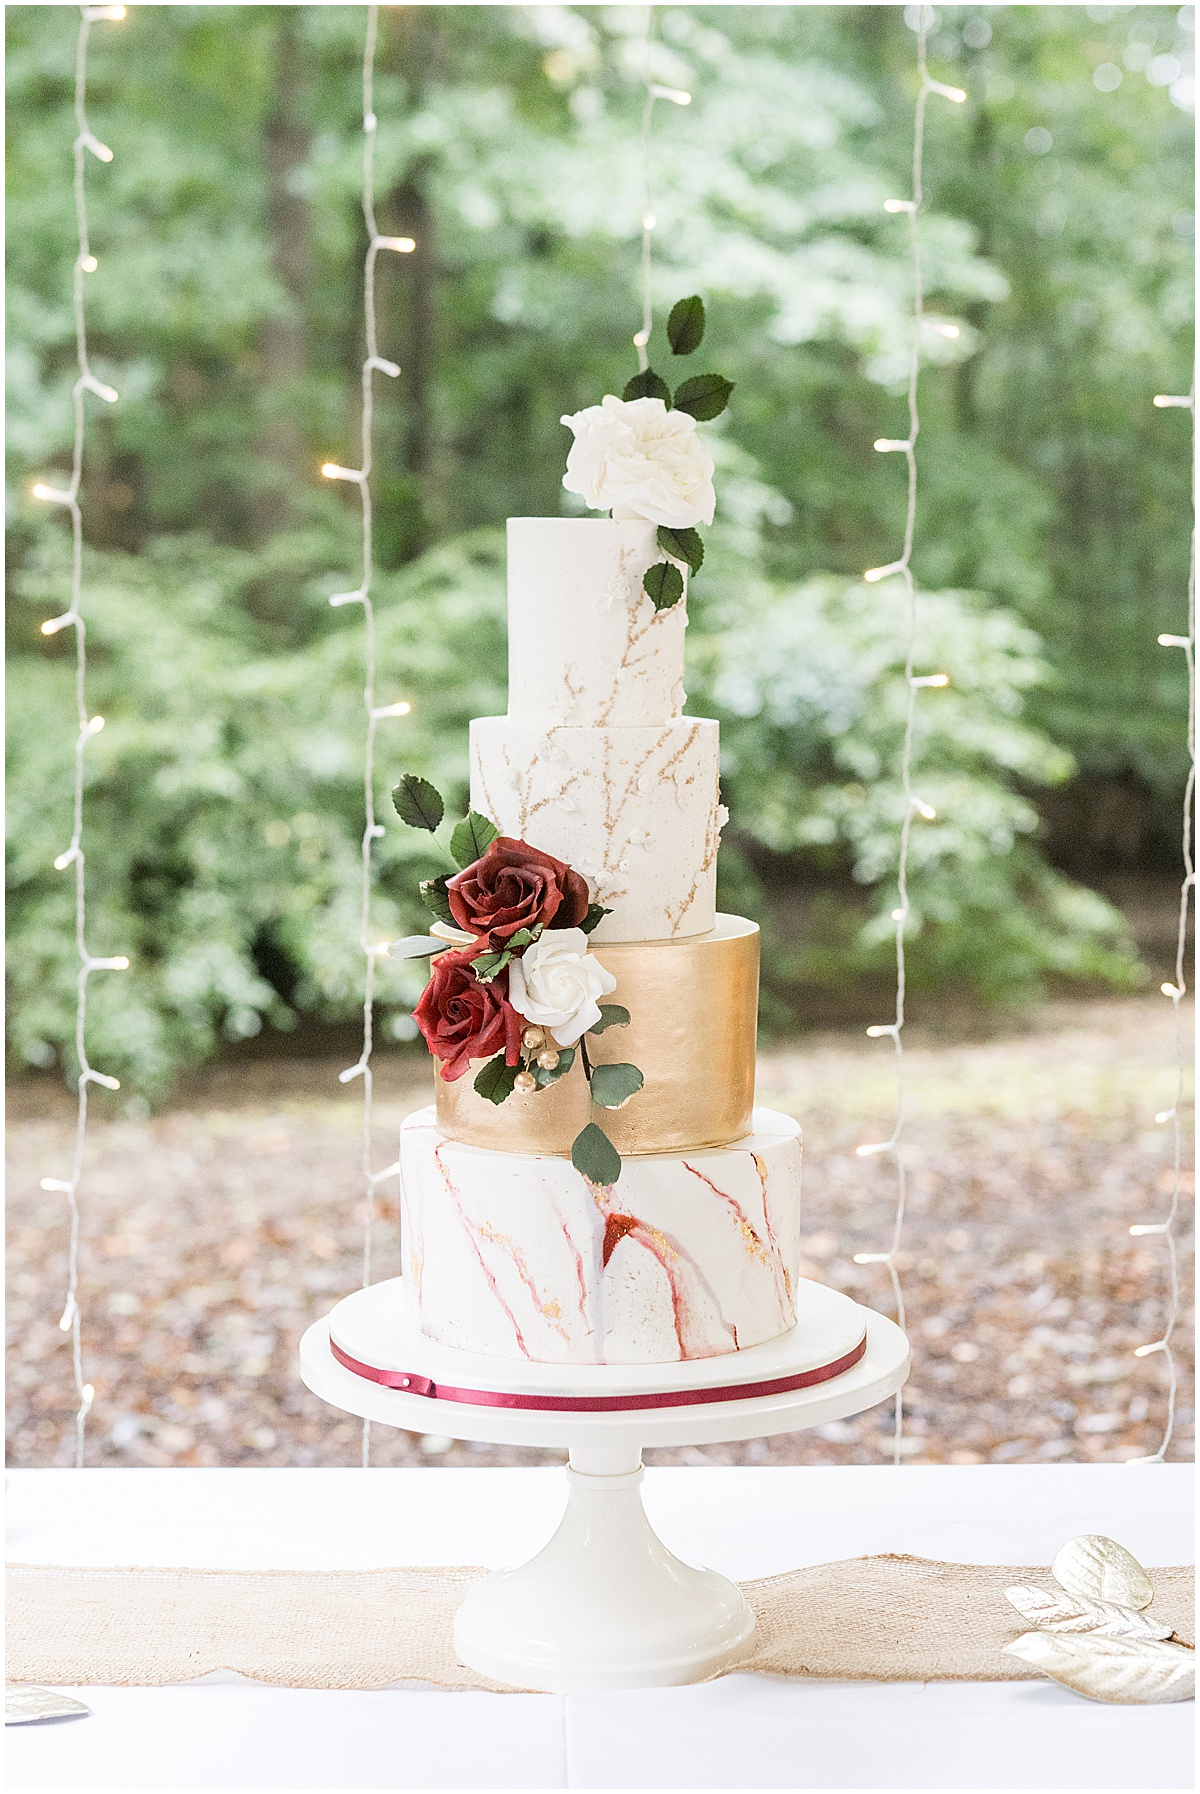 Reception details for Wildcat Conservation Club wedding in Mulberry, Indiana